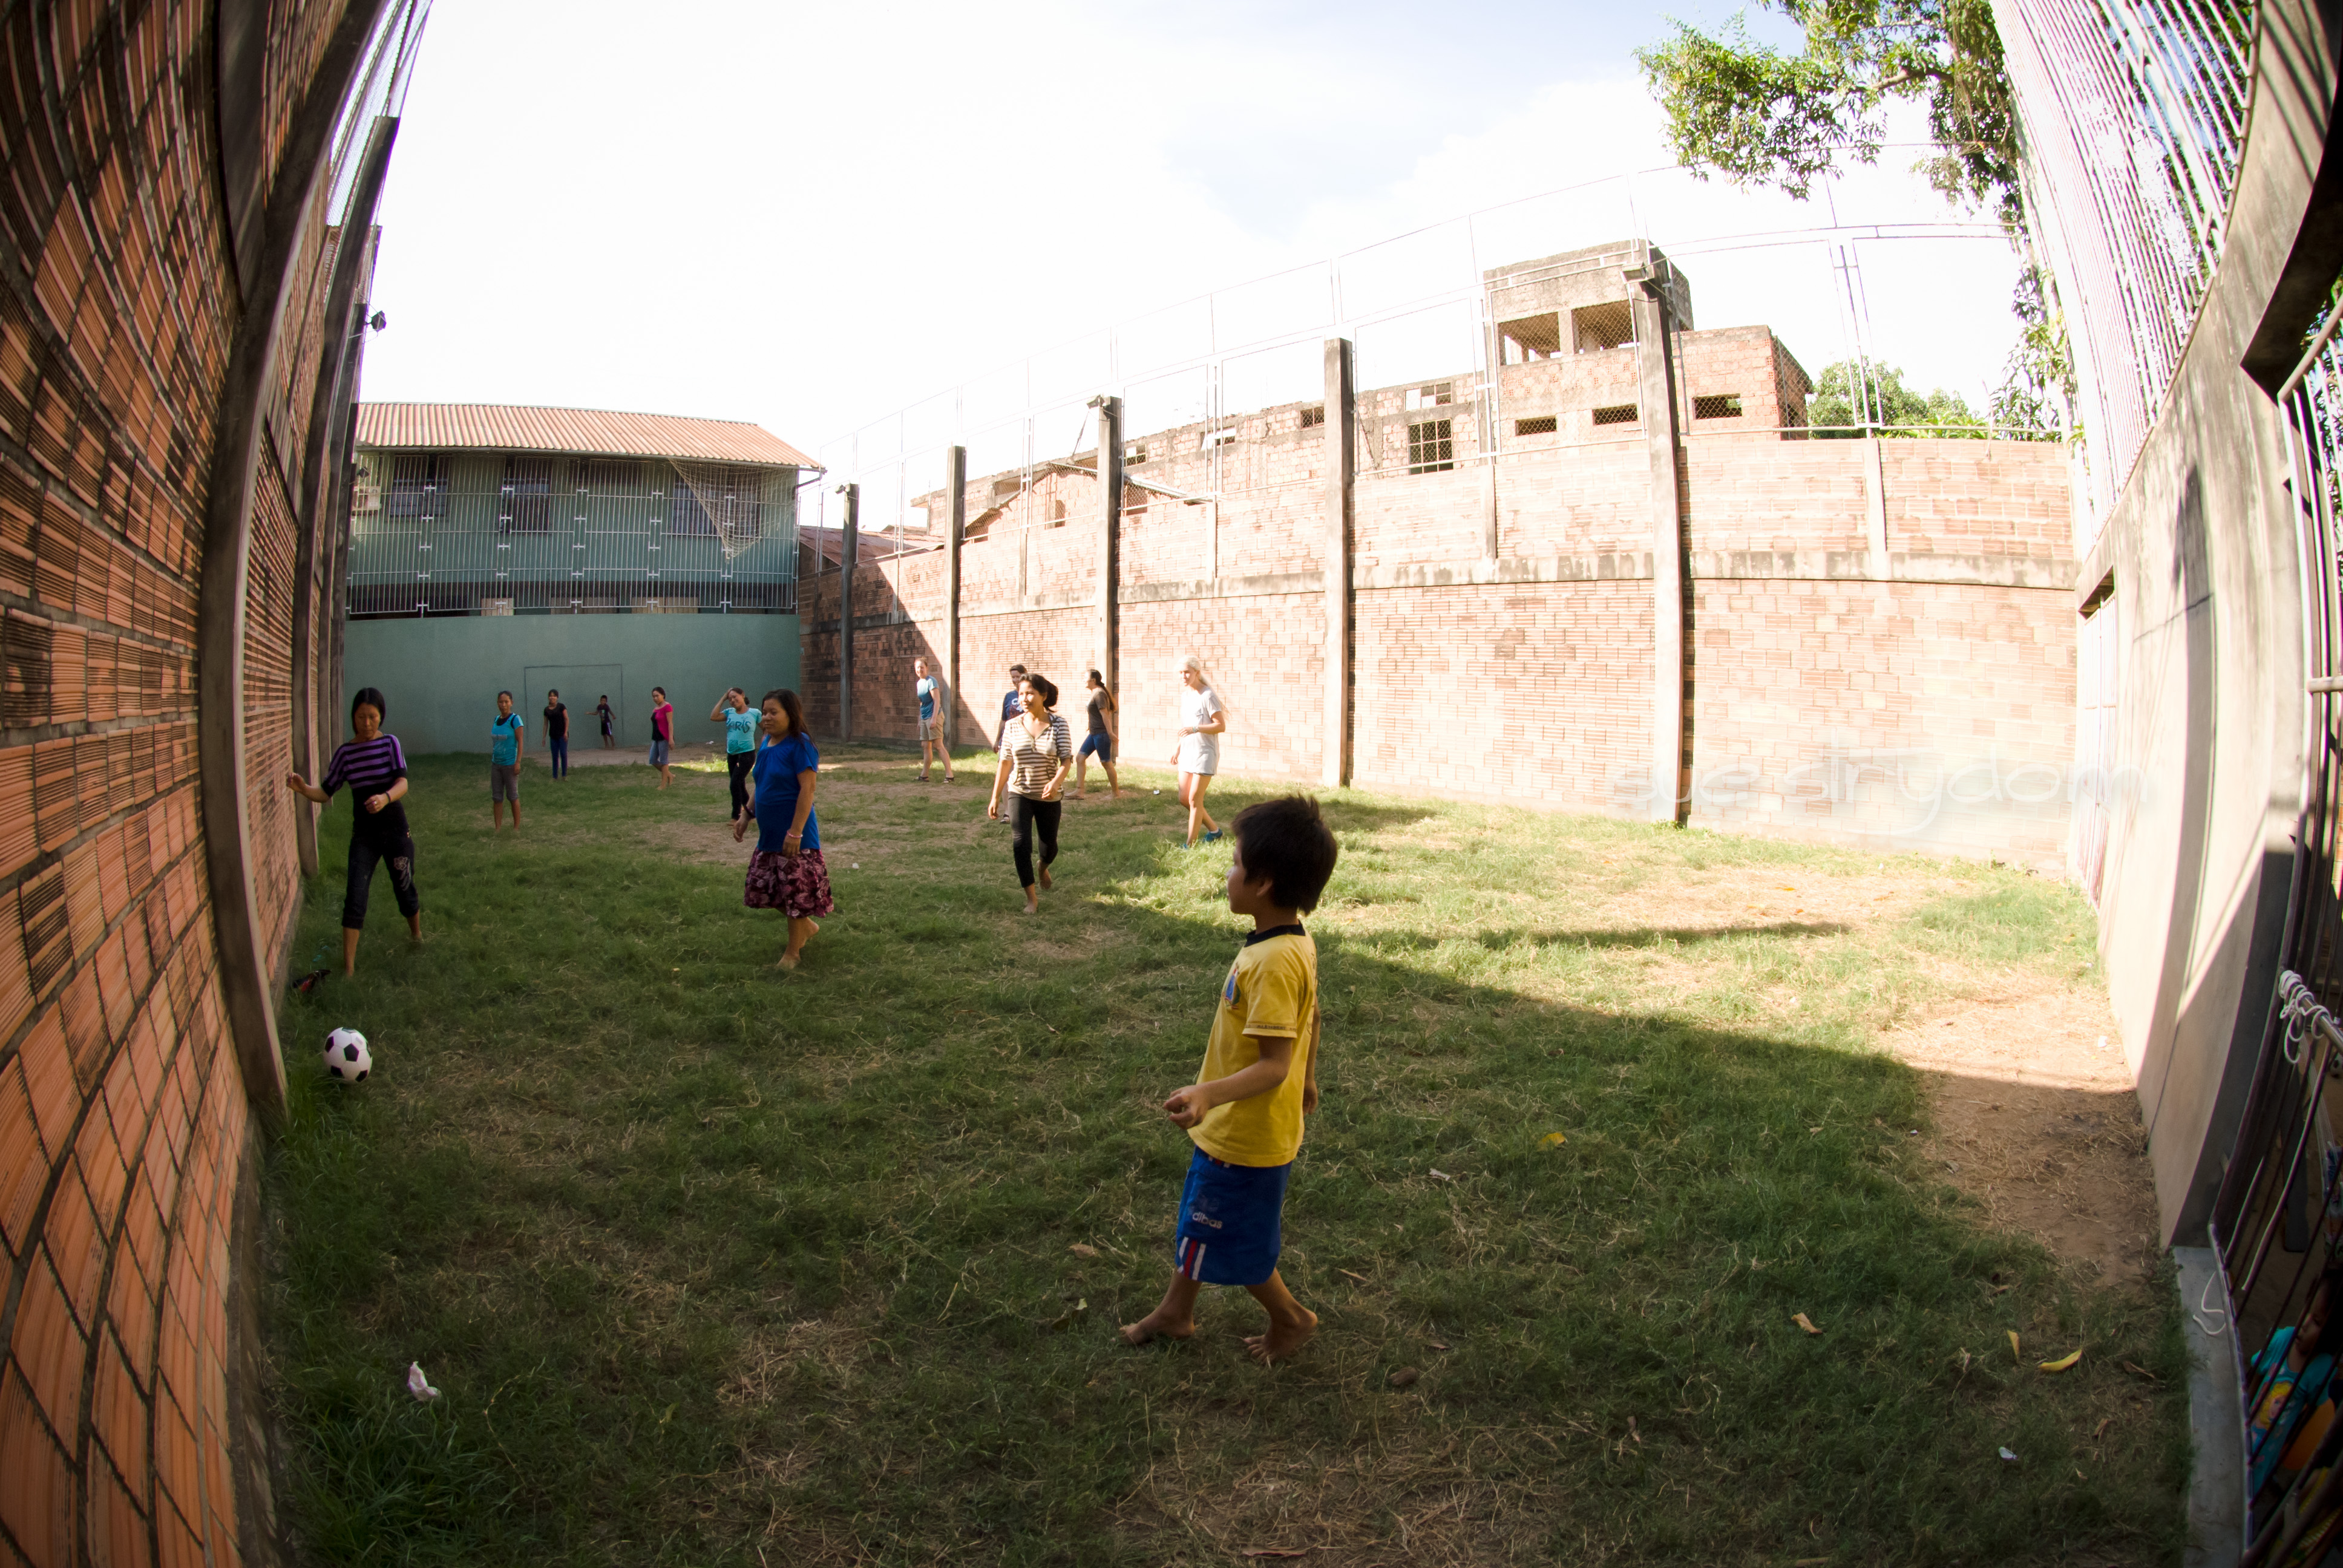 The soccer field. Looks kinda prison-esque, right? But it's theirs. It's safe. And it serves as the only area where they can burn some physical energy.